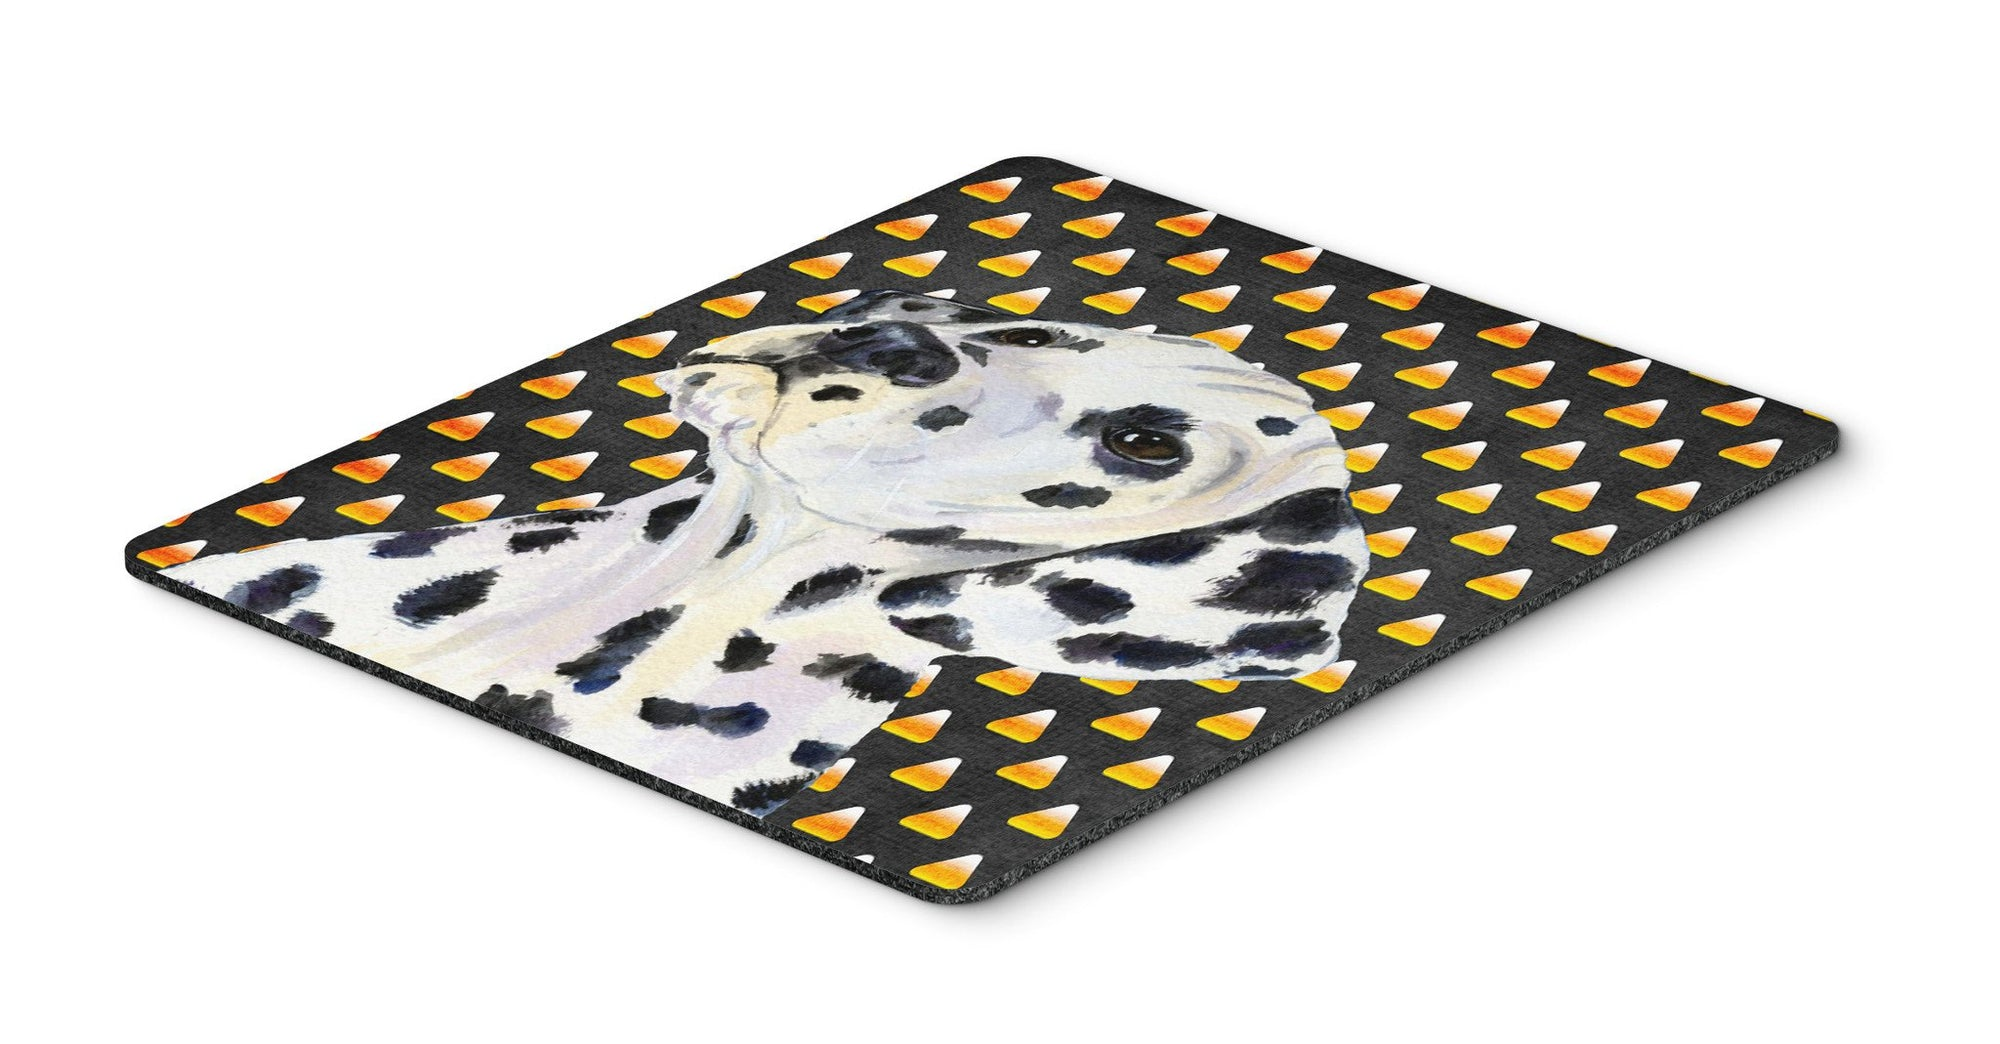 Dalmatian Candy Corn Halloween Portrait Mouse Pad, Hot Pad or Trivet by Caroline's Treasures